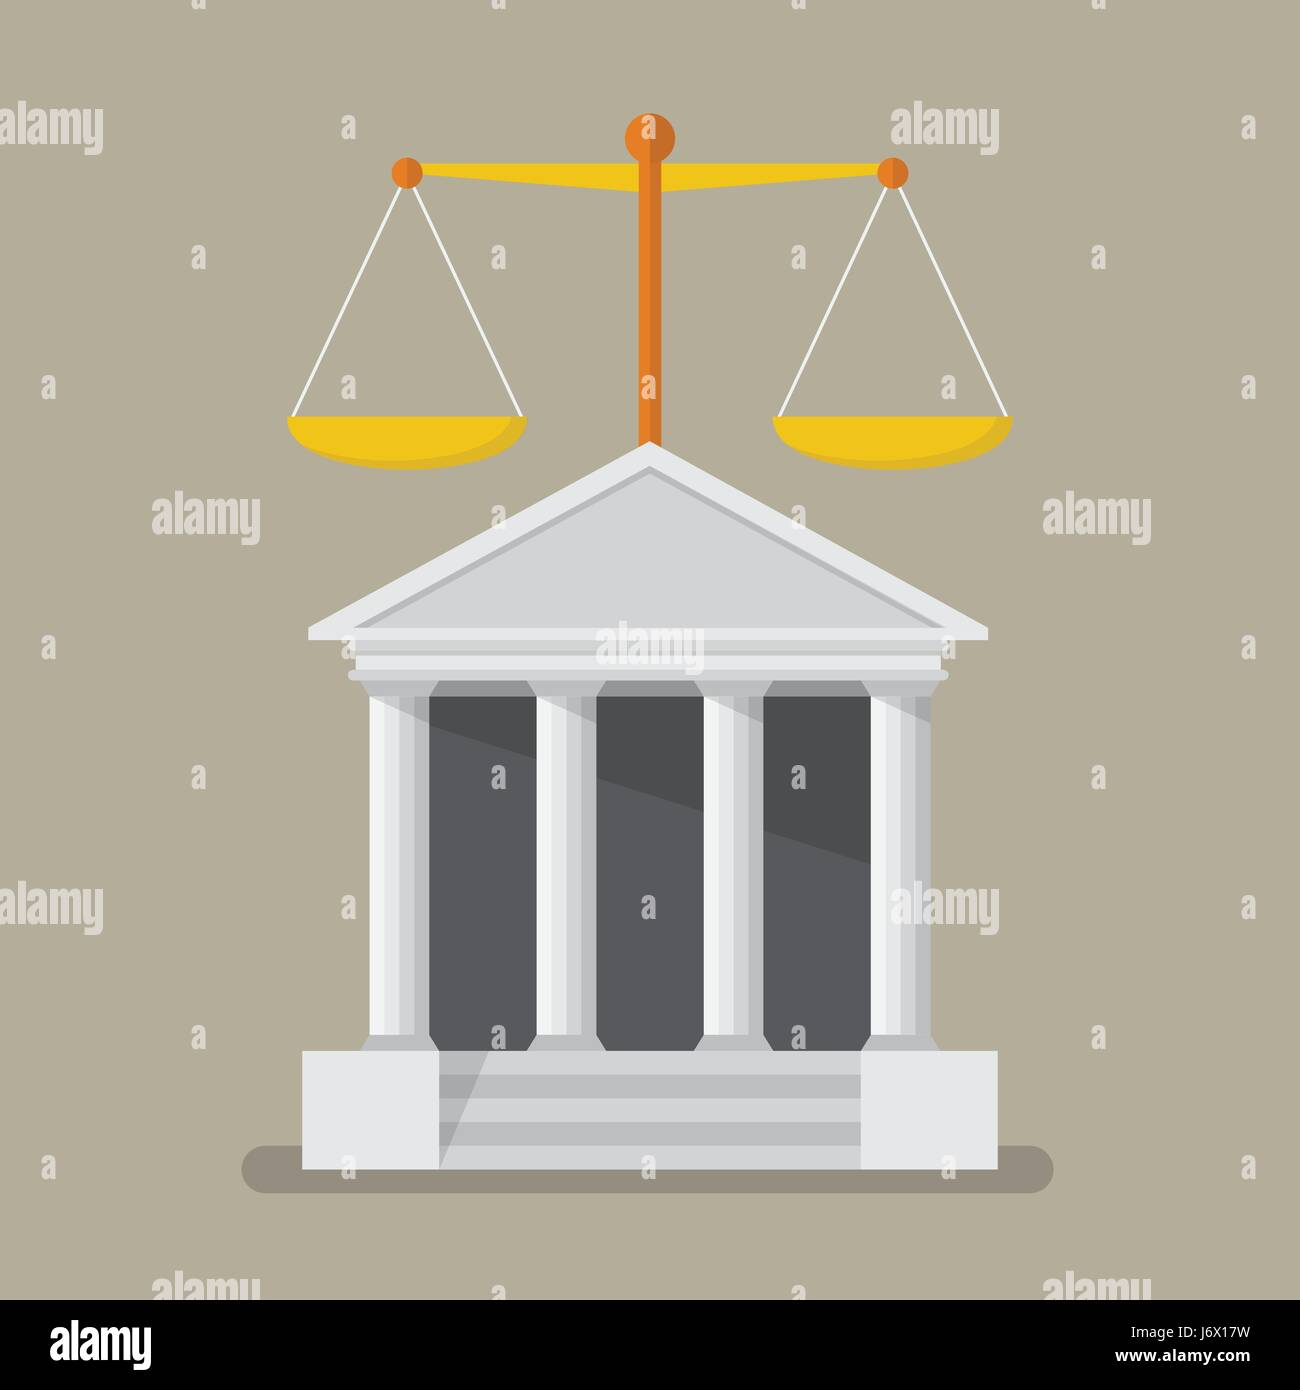 Court building with scales of justice. Flat style vector illustration - Stock Vector